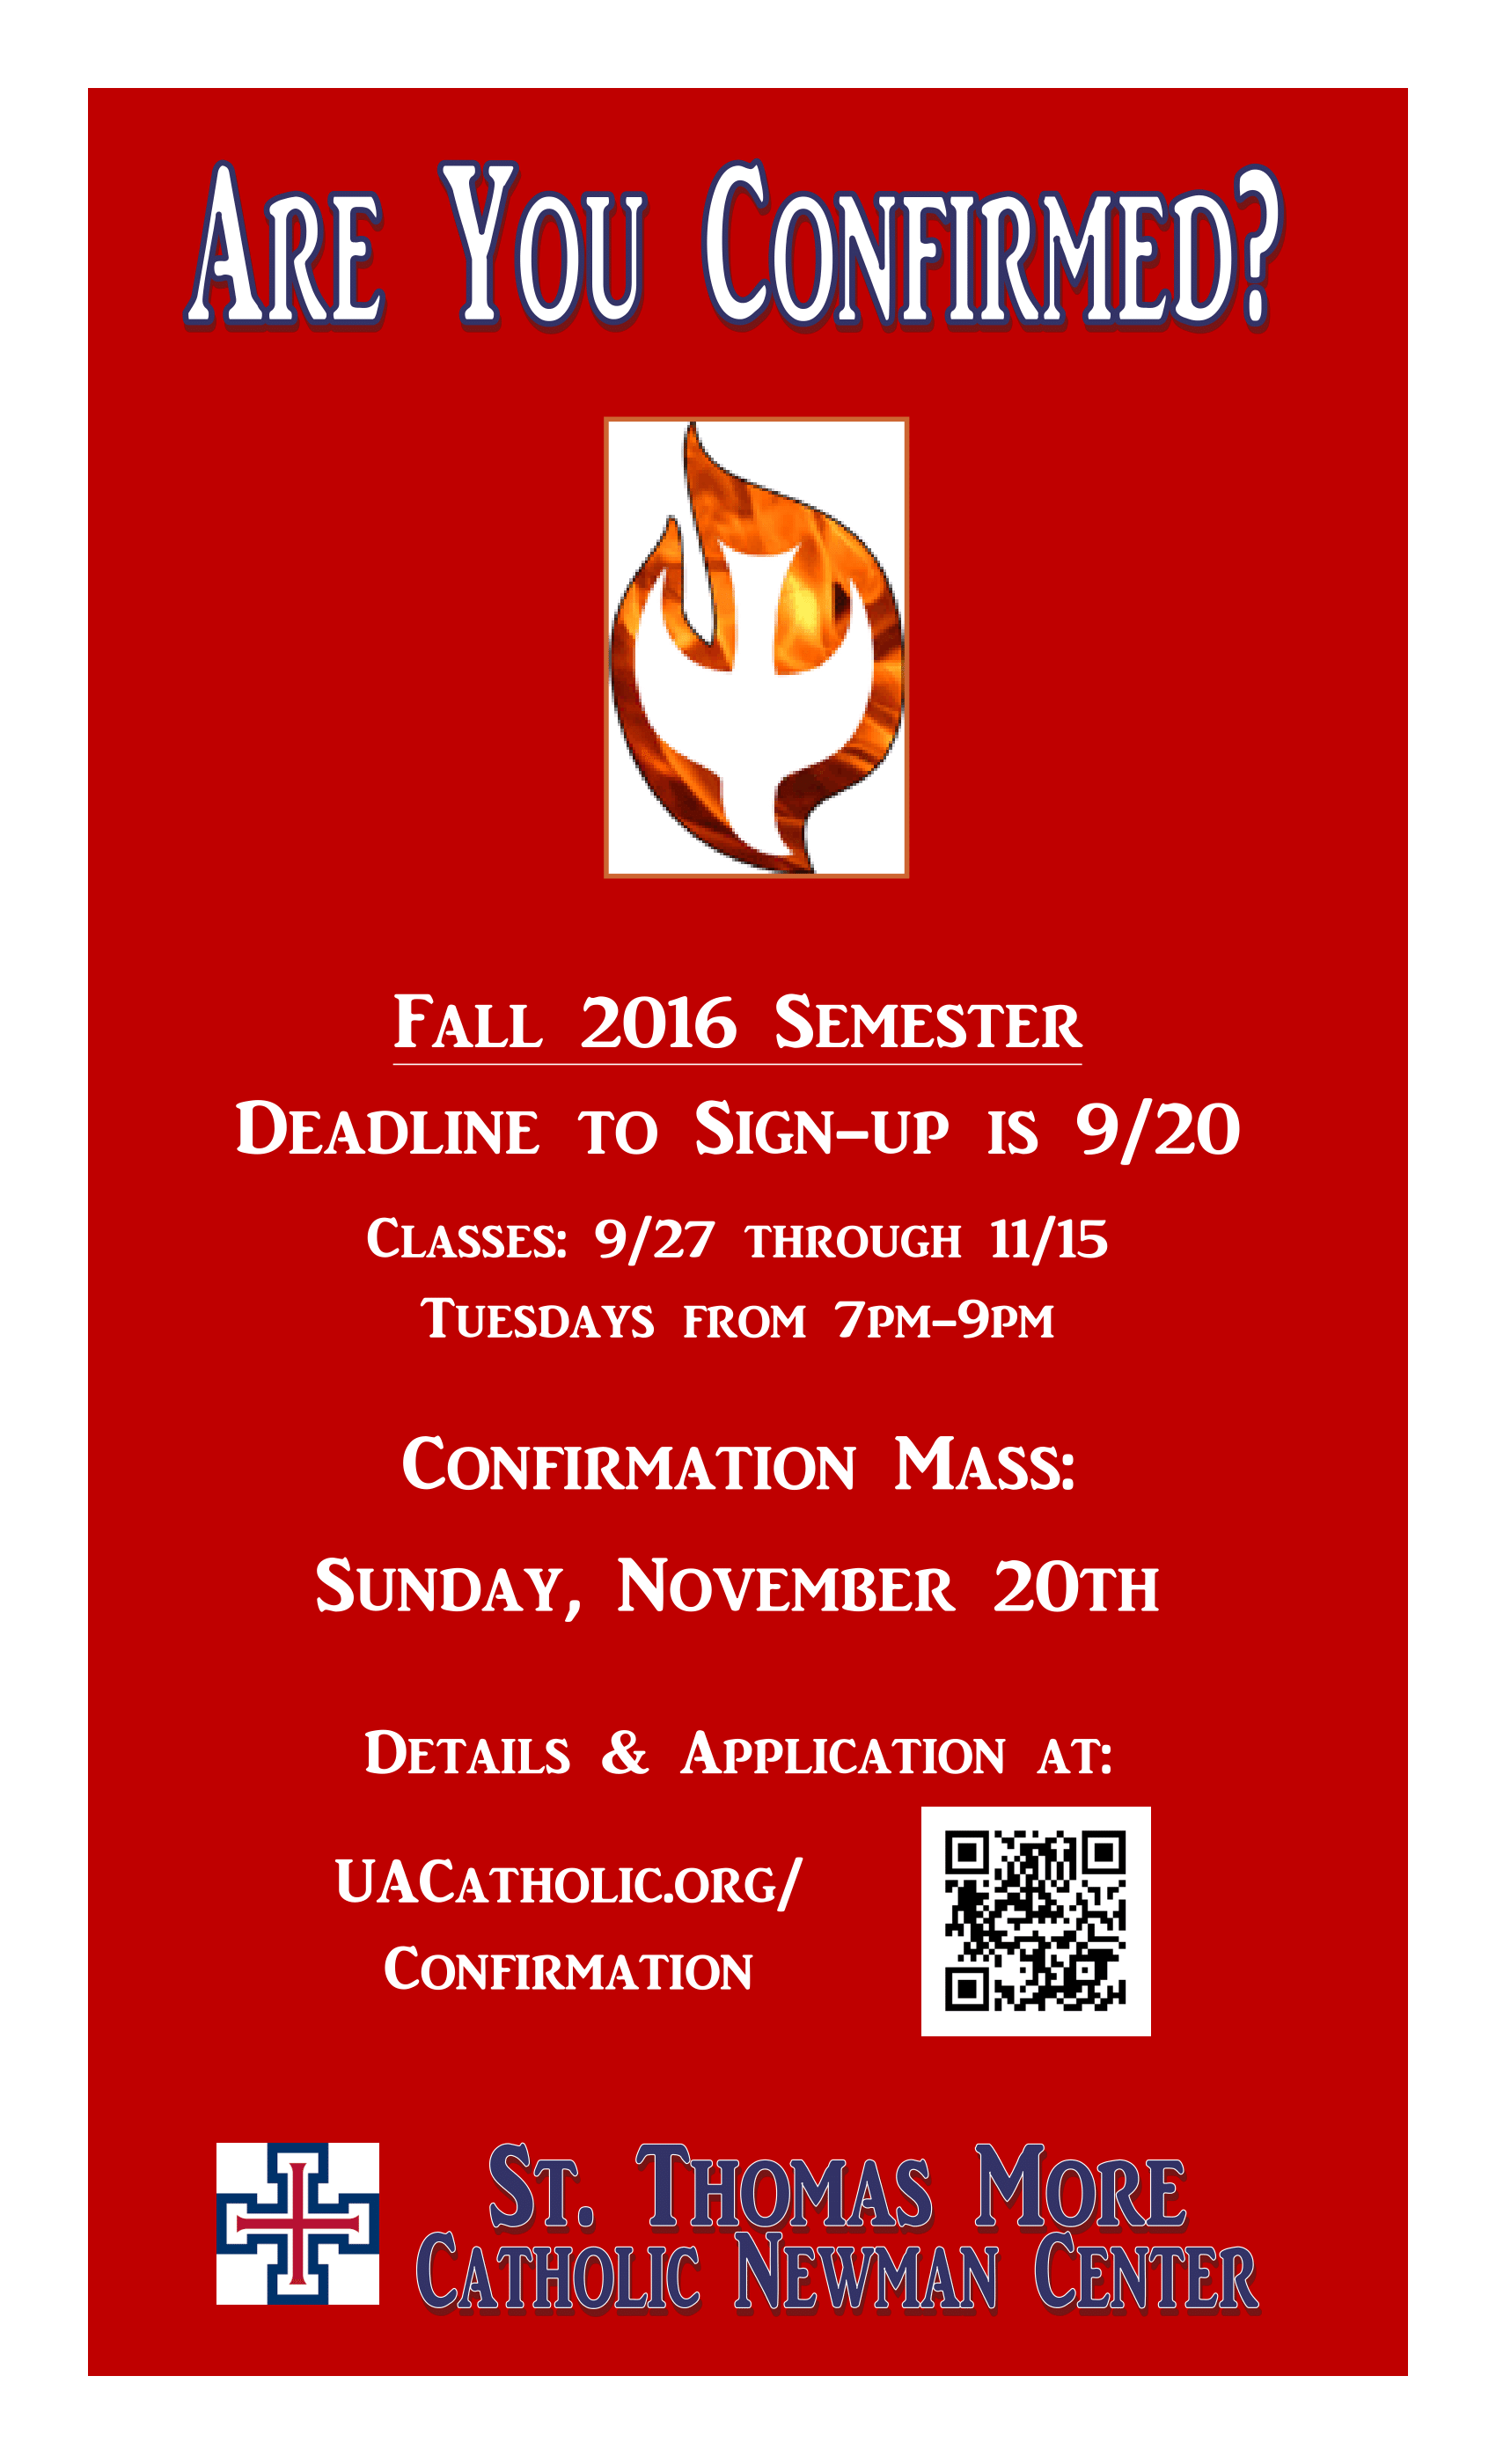 Are You Confirmed? Fall 2016 Semester Confirmation Class: Deadline to Sign-Up is September 20, 2016; Classes are September 27, 2016 through November 15, 2016 on Tuesdays from 7:00 PM – 9:00 PM; Confirmation Mass: Sunday, November 20, 2016; Details and Application at: uacatholic.org/confirmation